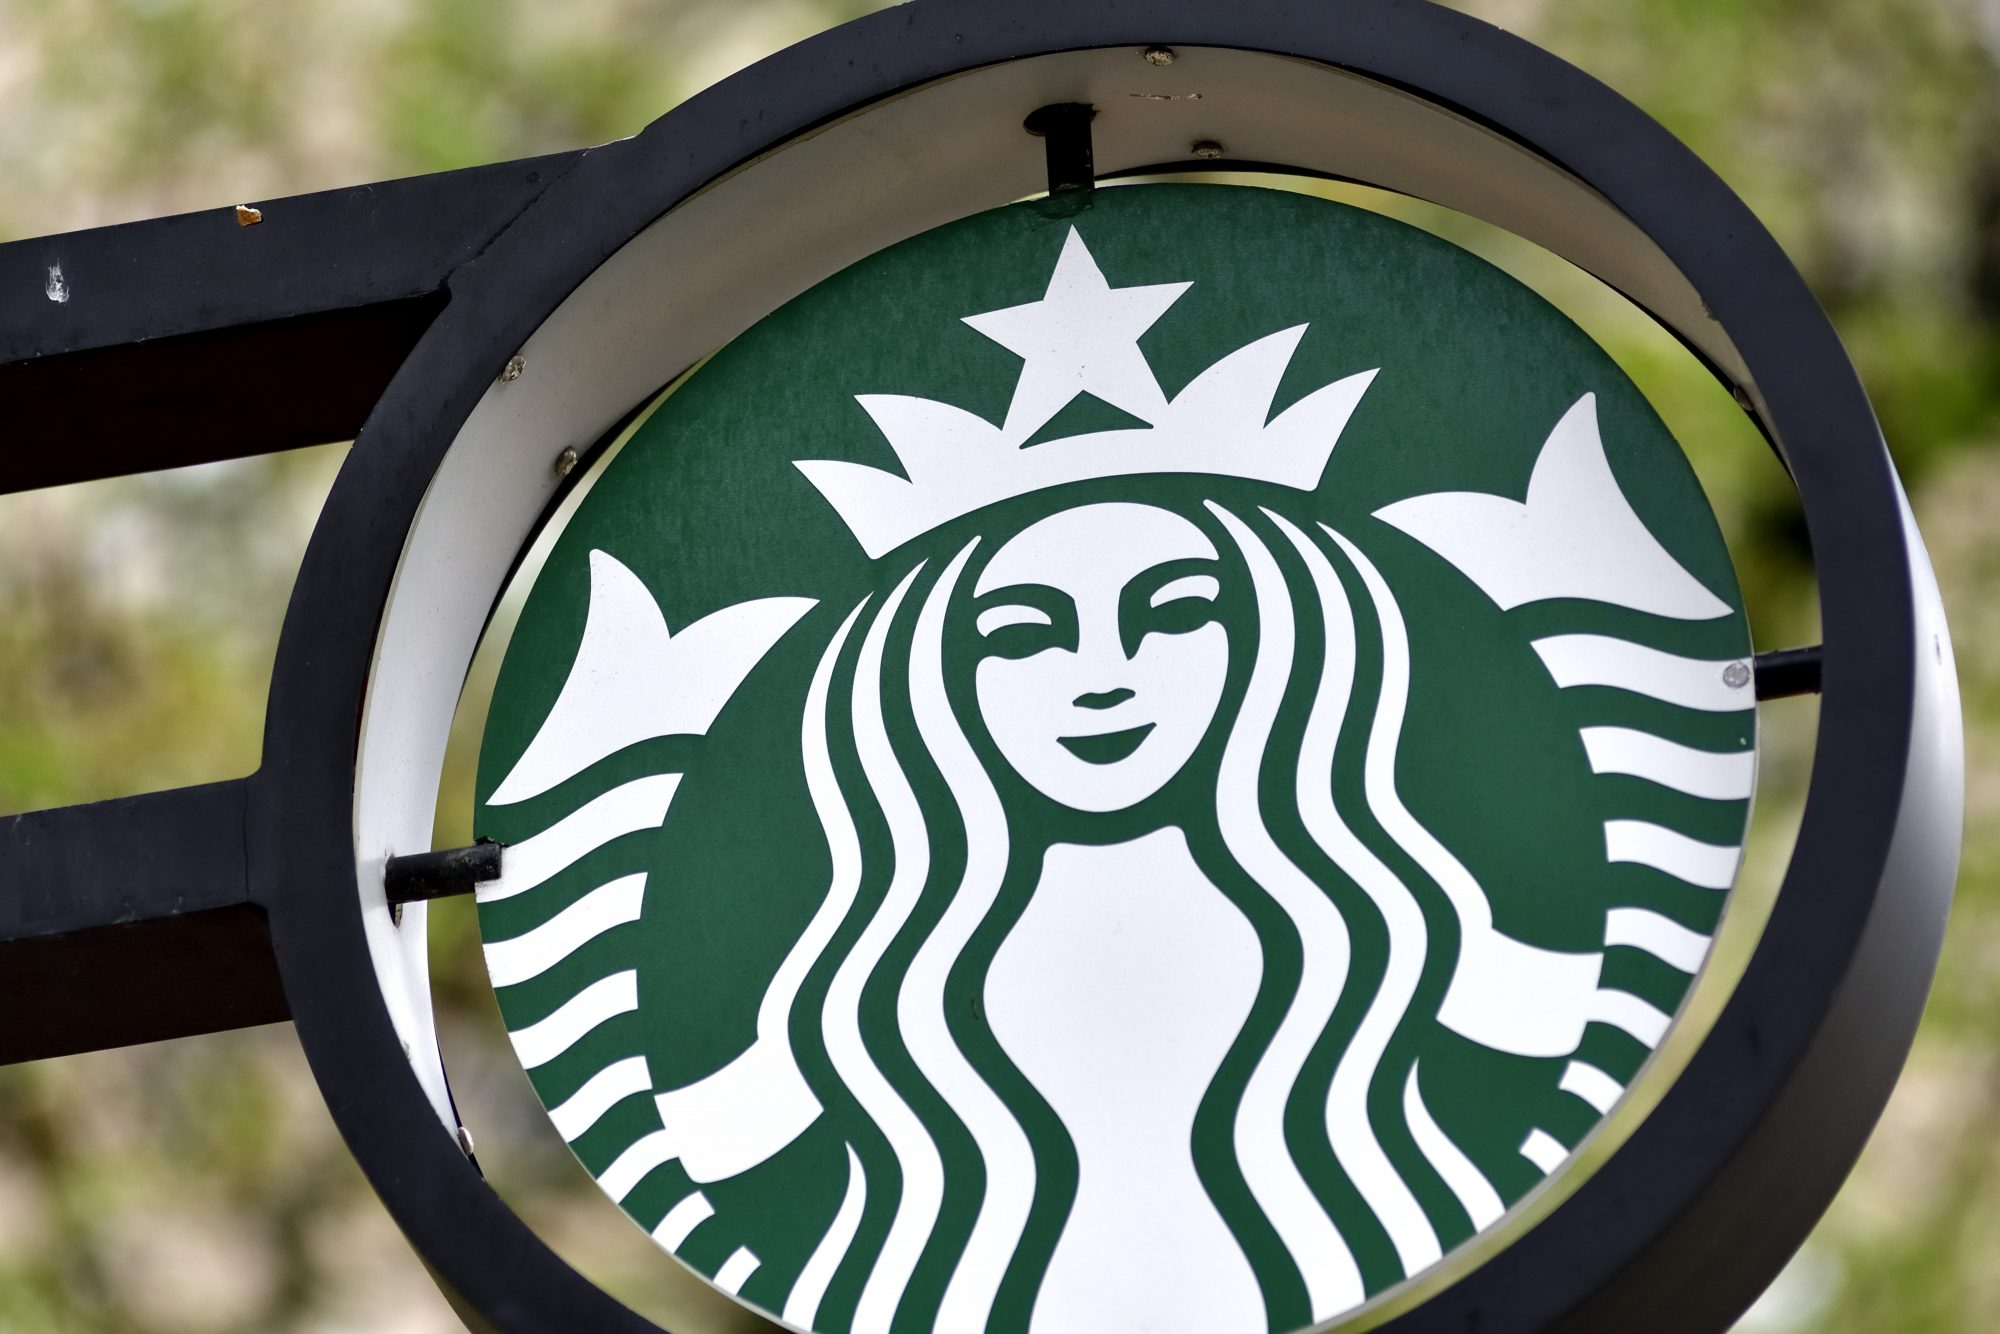 starbucks-sign-logo